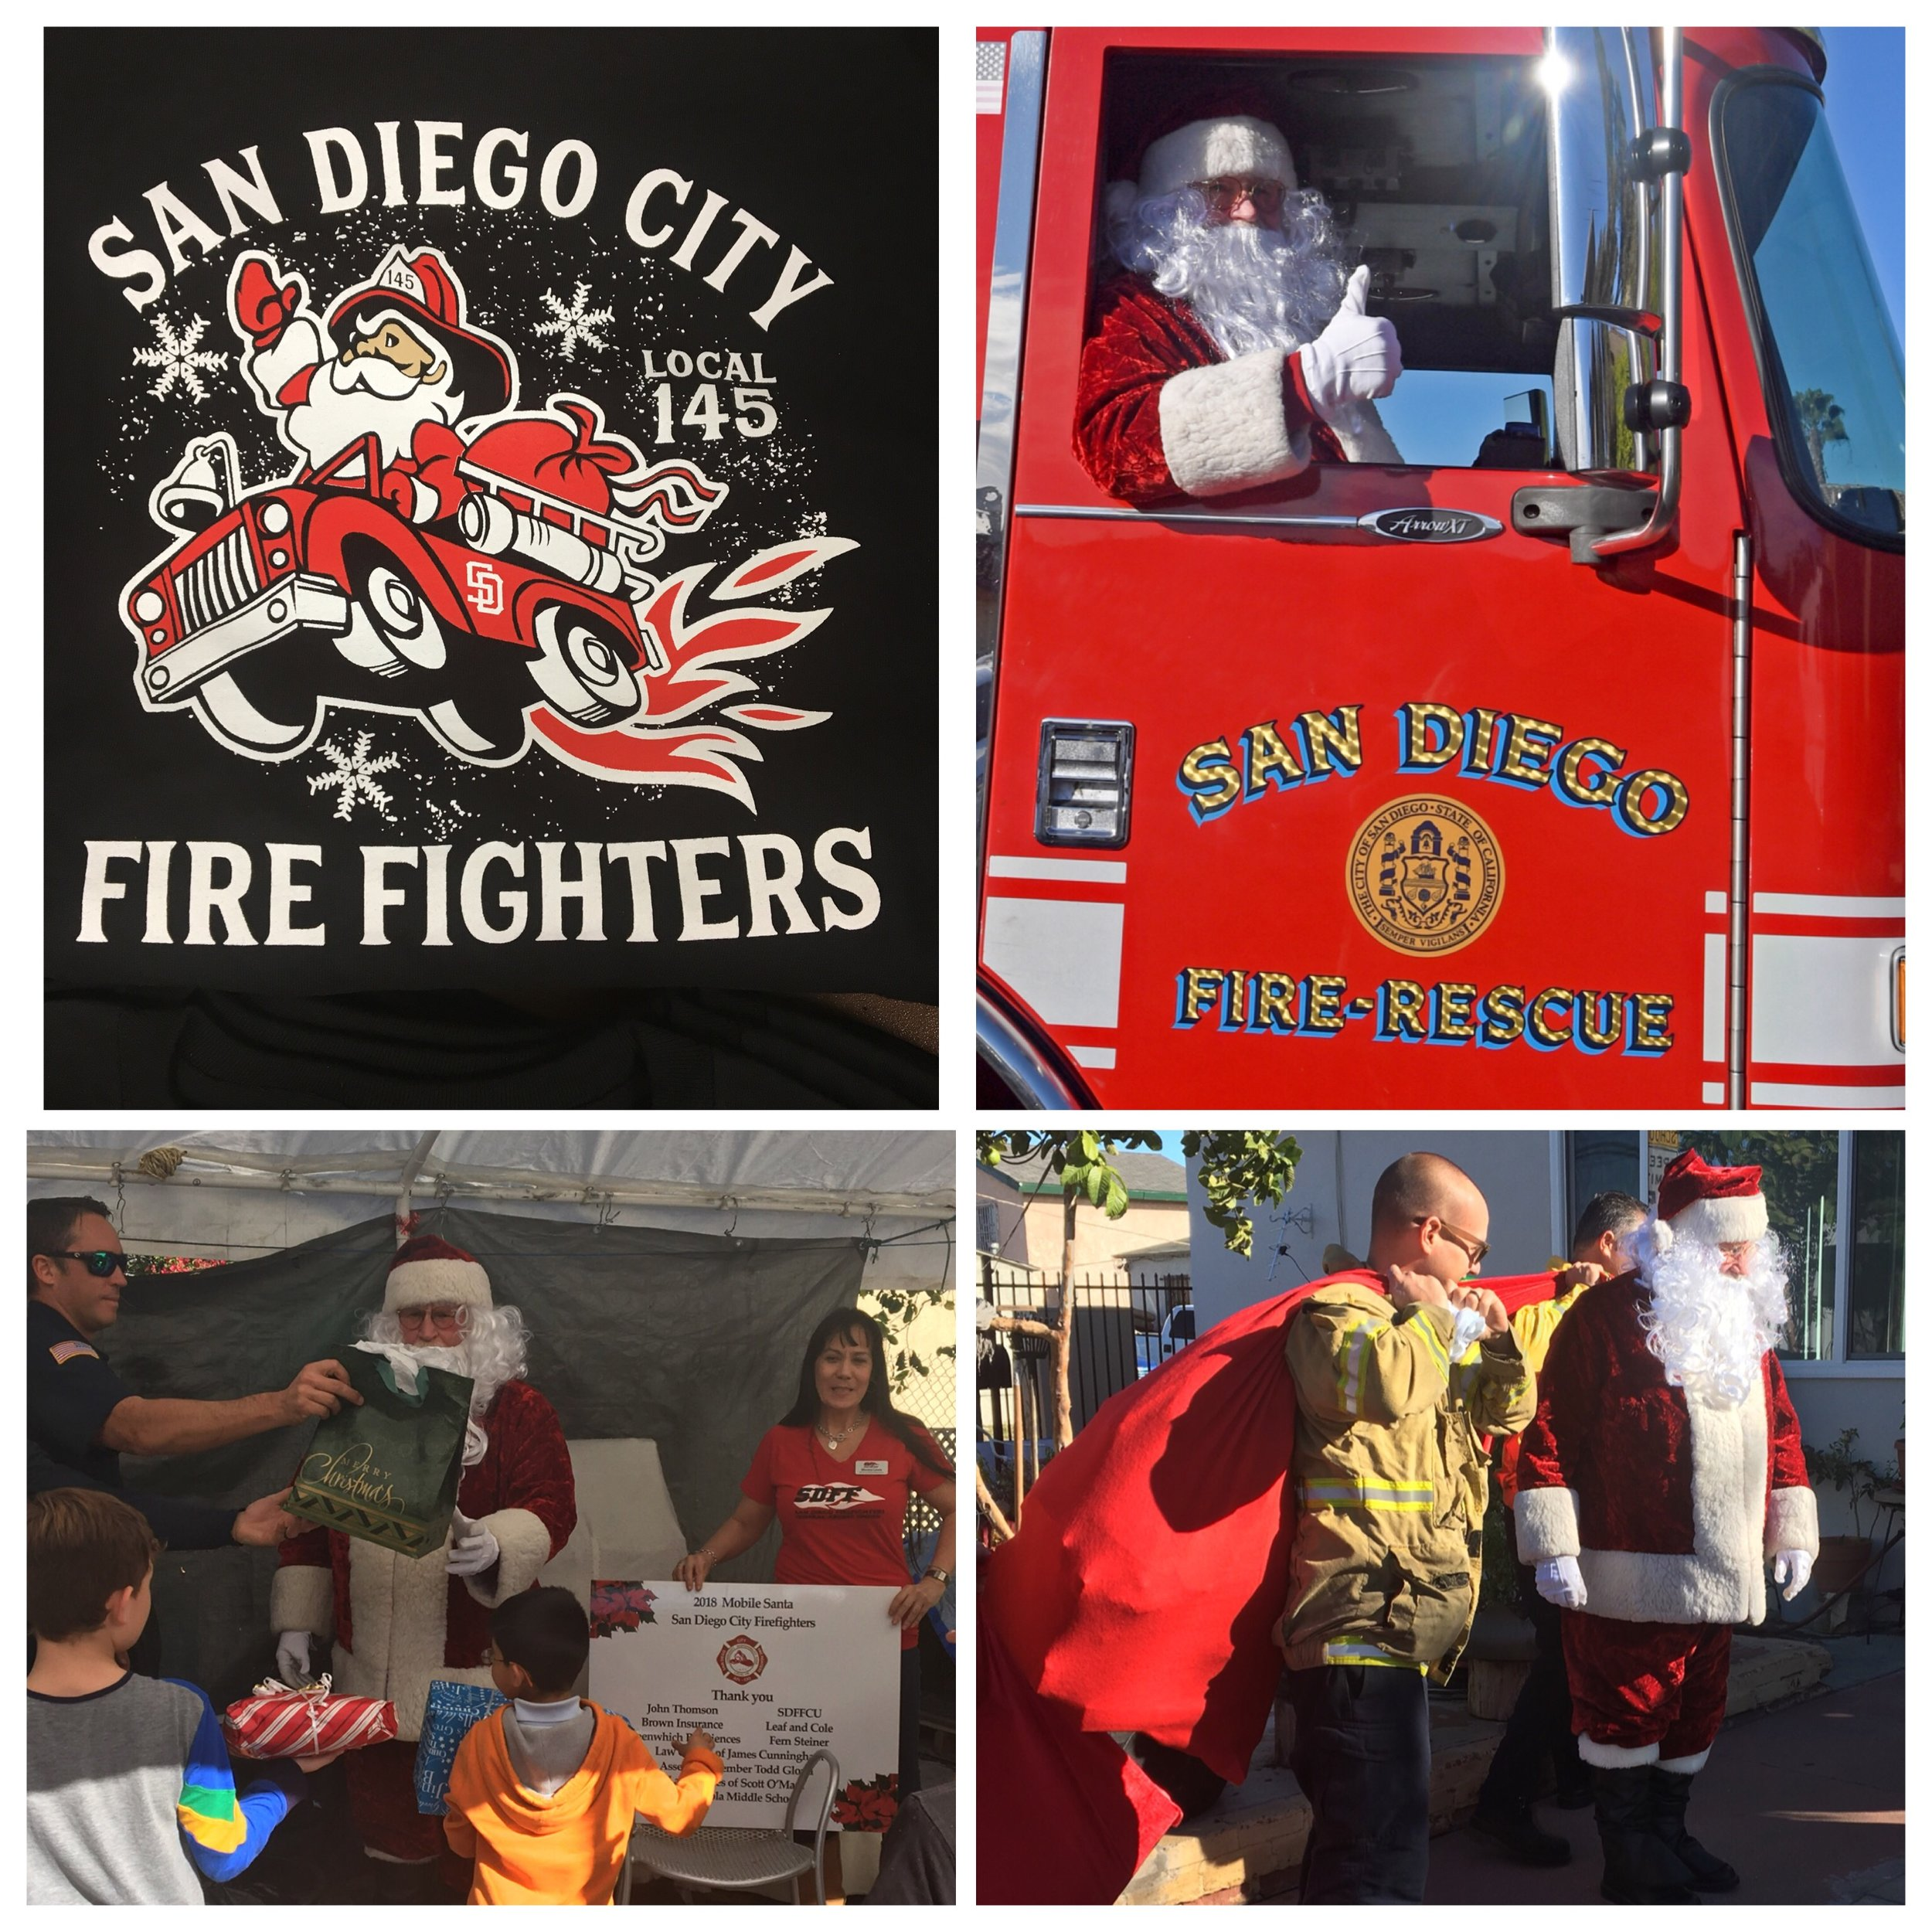 - The Annual Mobile Santa took place this past Saturday (December 15)This year, San Diego City Firefighters were able to make wishes come true for 9 families as well as hand out toys to hundreds of children throughout the communities of Shelltown, Southcrest and Mountain View.The staff of San Diego Firefighters Federal Credit Union are proud veteran Mobile Santa supporters.